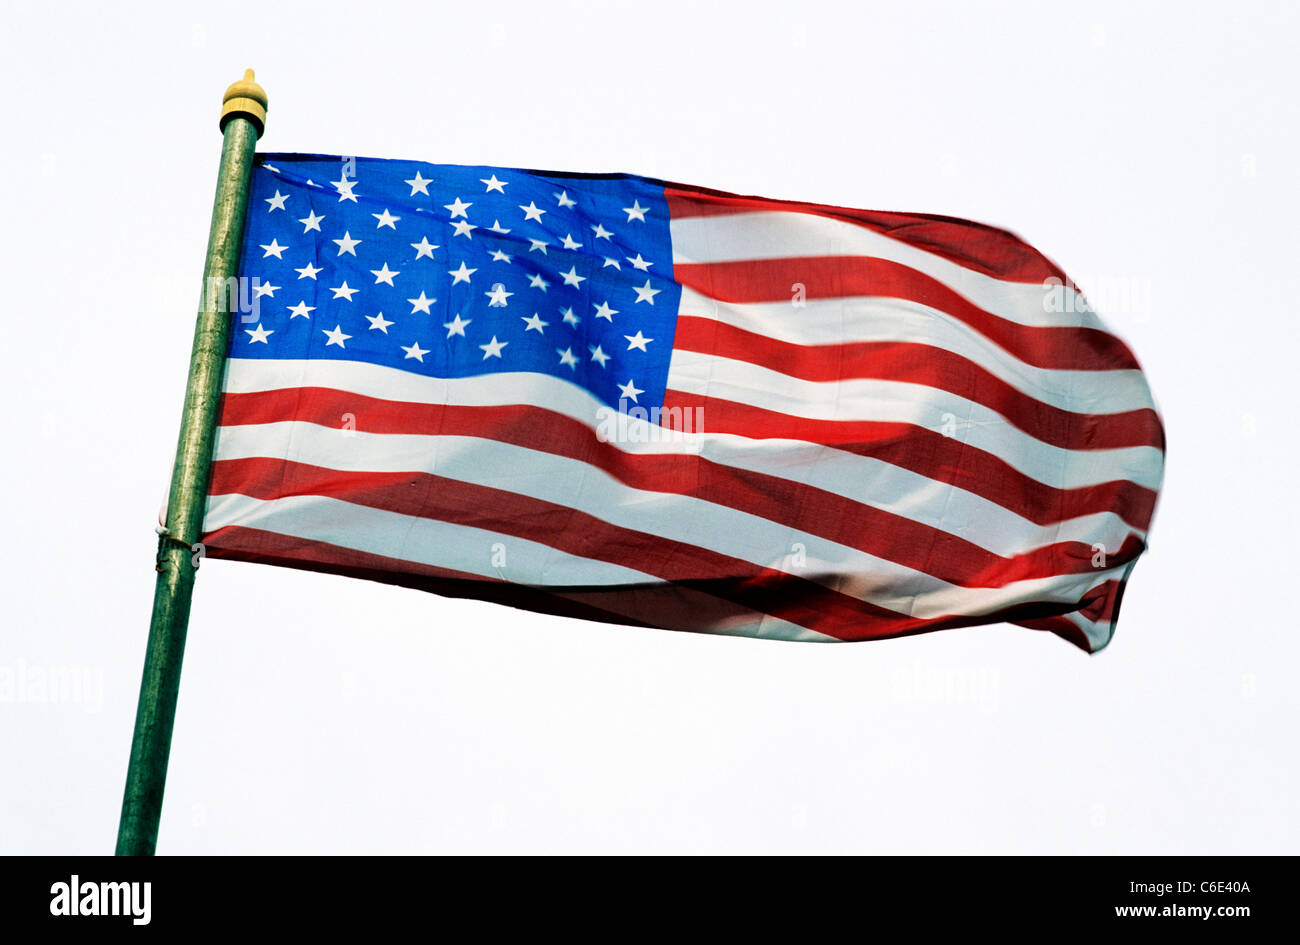 USA Flag, Stars and Stripes, United States of America, American national flags flying from flagpole - Stock Image